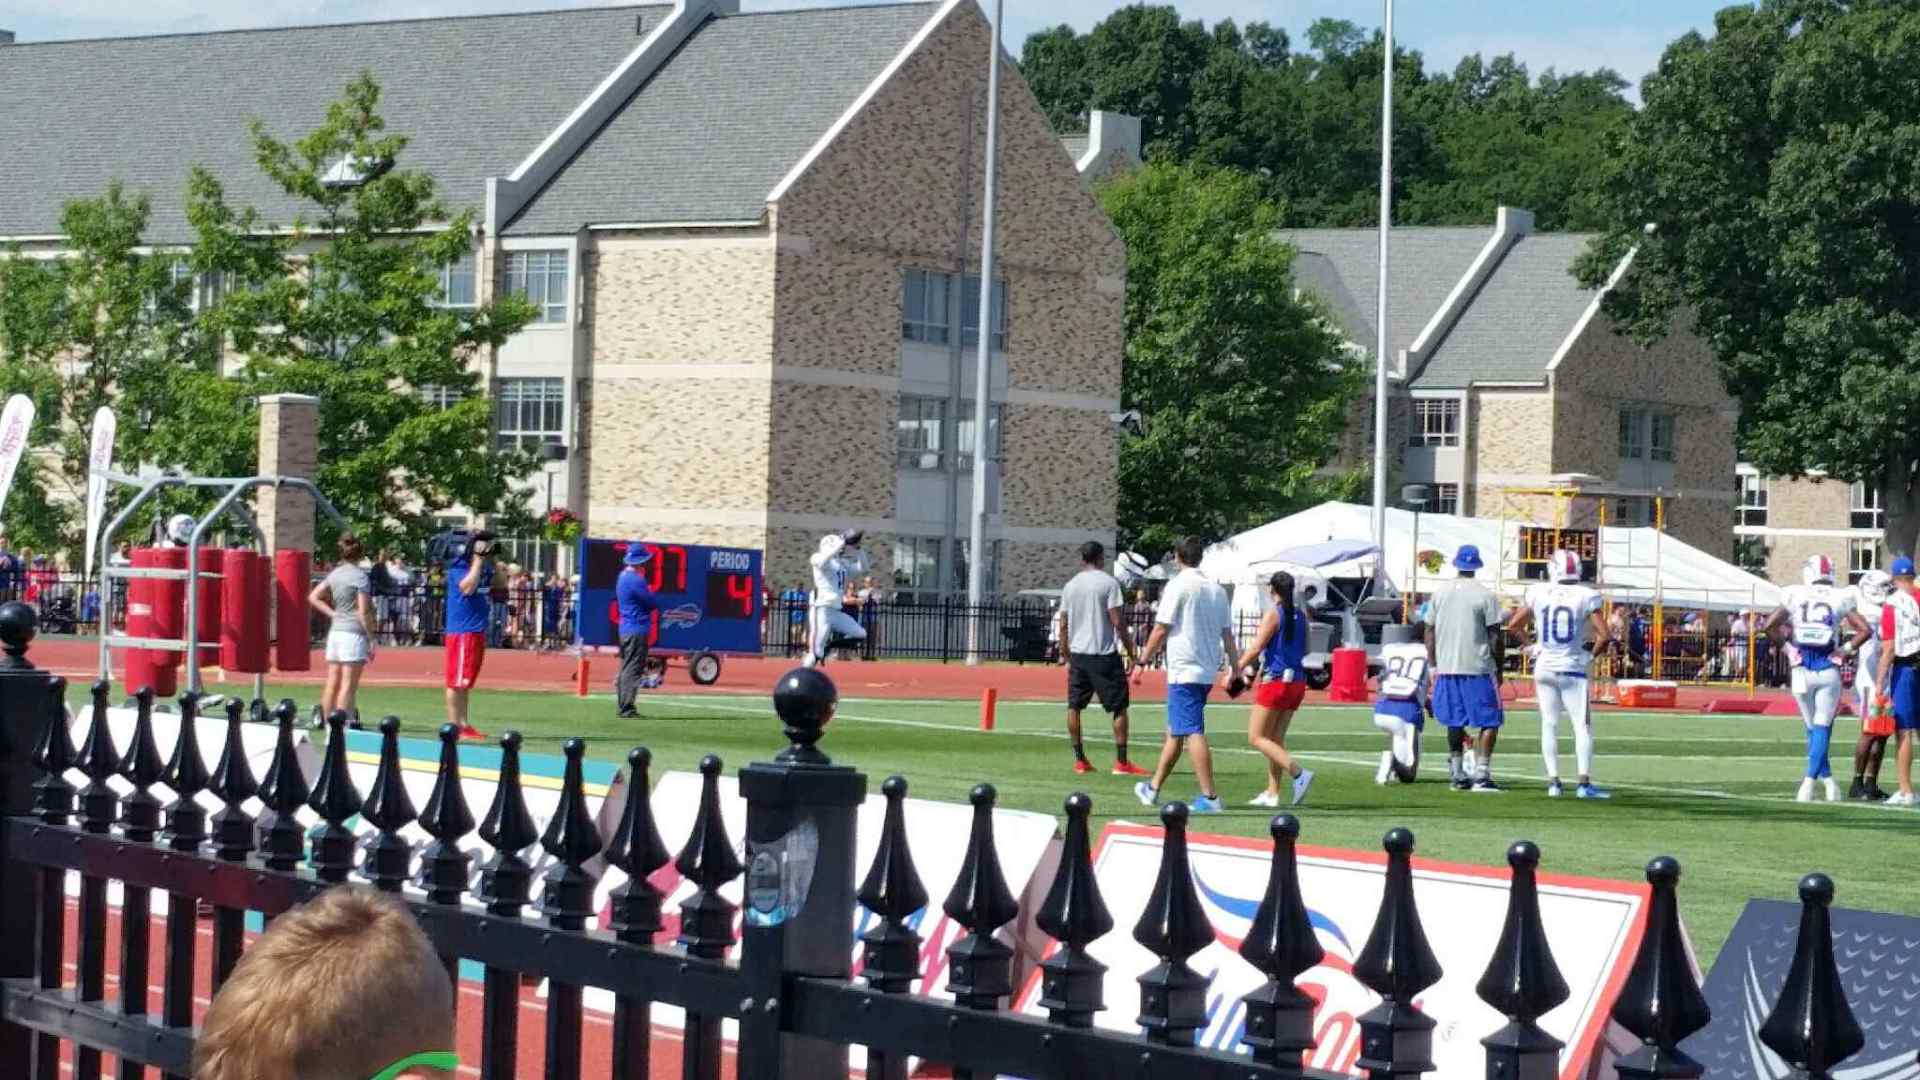 Buffalo Bills' Training Camp From the Eyes of a Non-expert